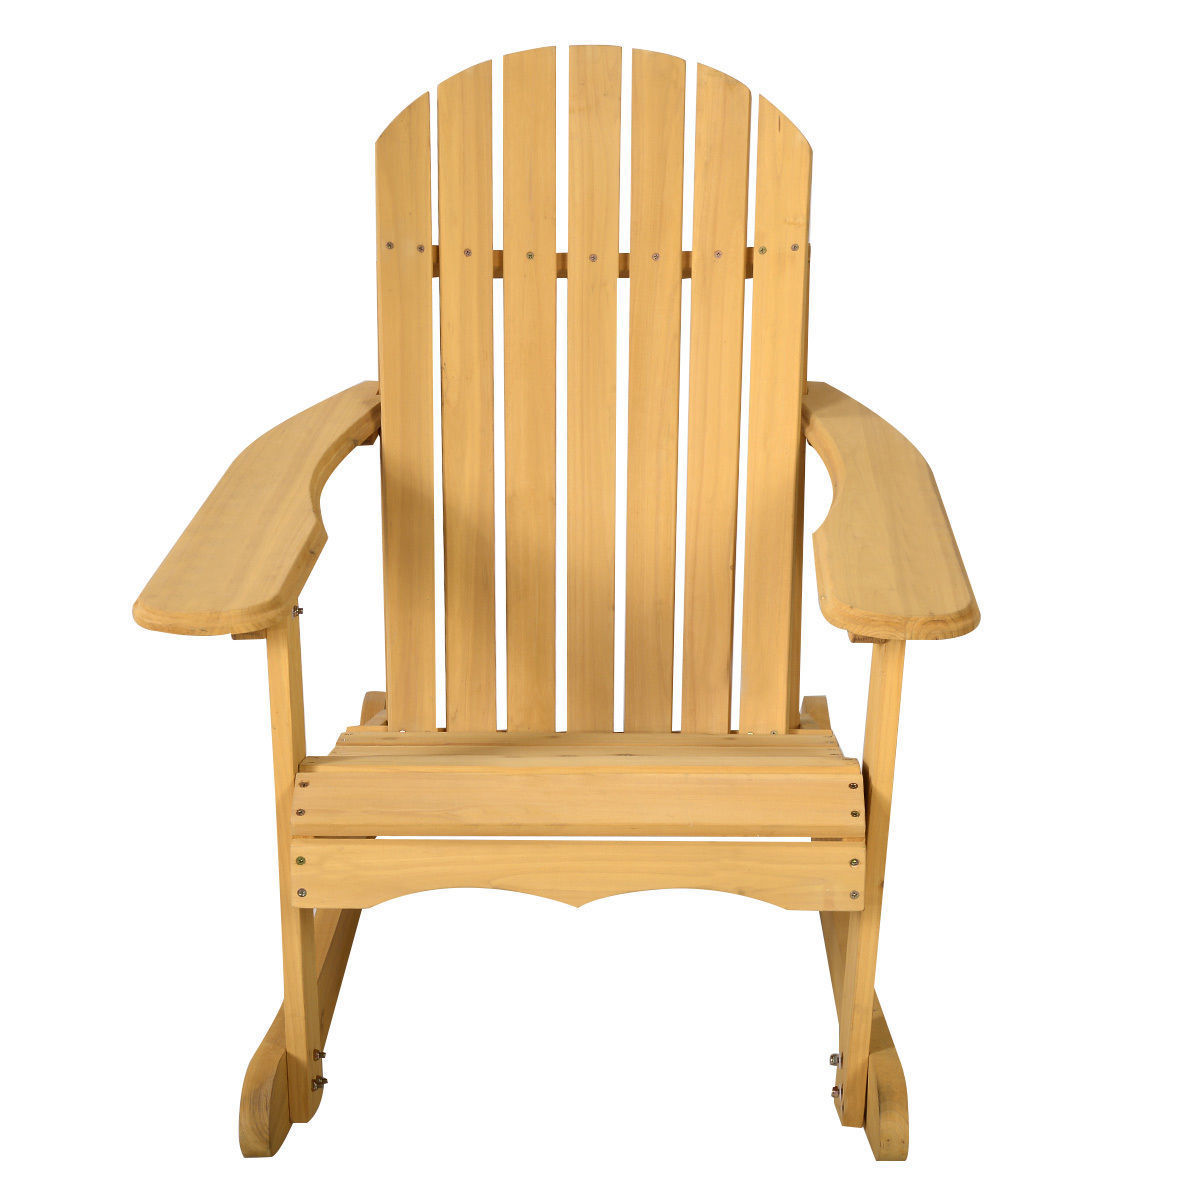 GHP Natural Fir Wood Contoured Seat Adirondack Patio Porch Deck Garden Rocking Chair